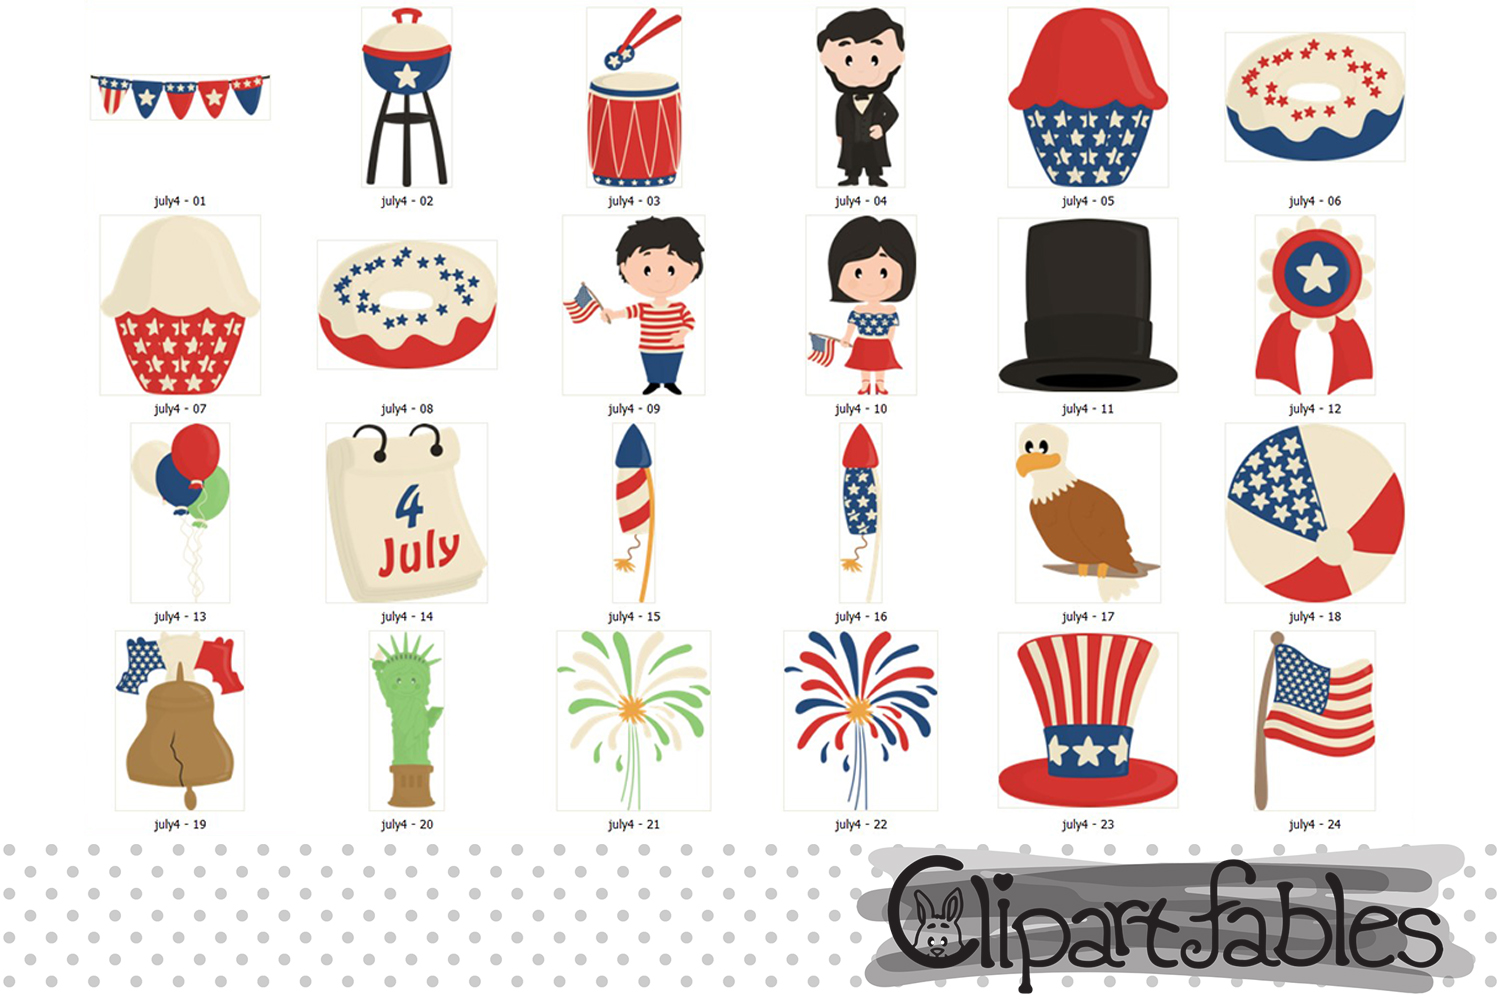 Happy INDEPENDENCE Day clipart, 4th of JULY clipart, USA art example image 2